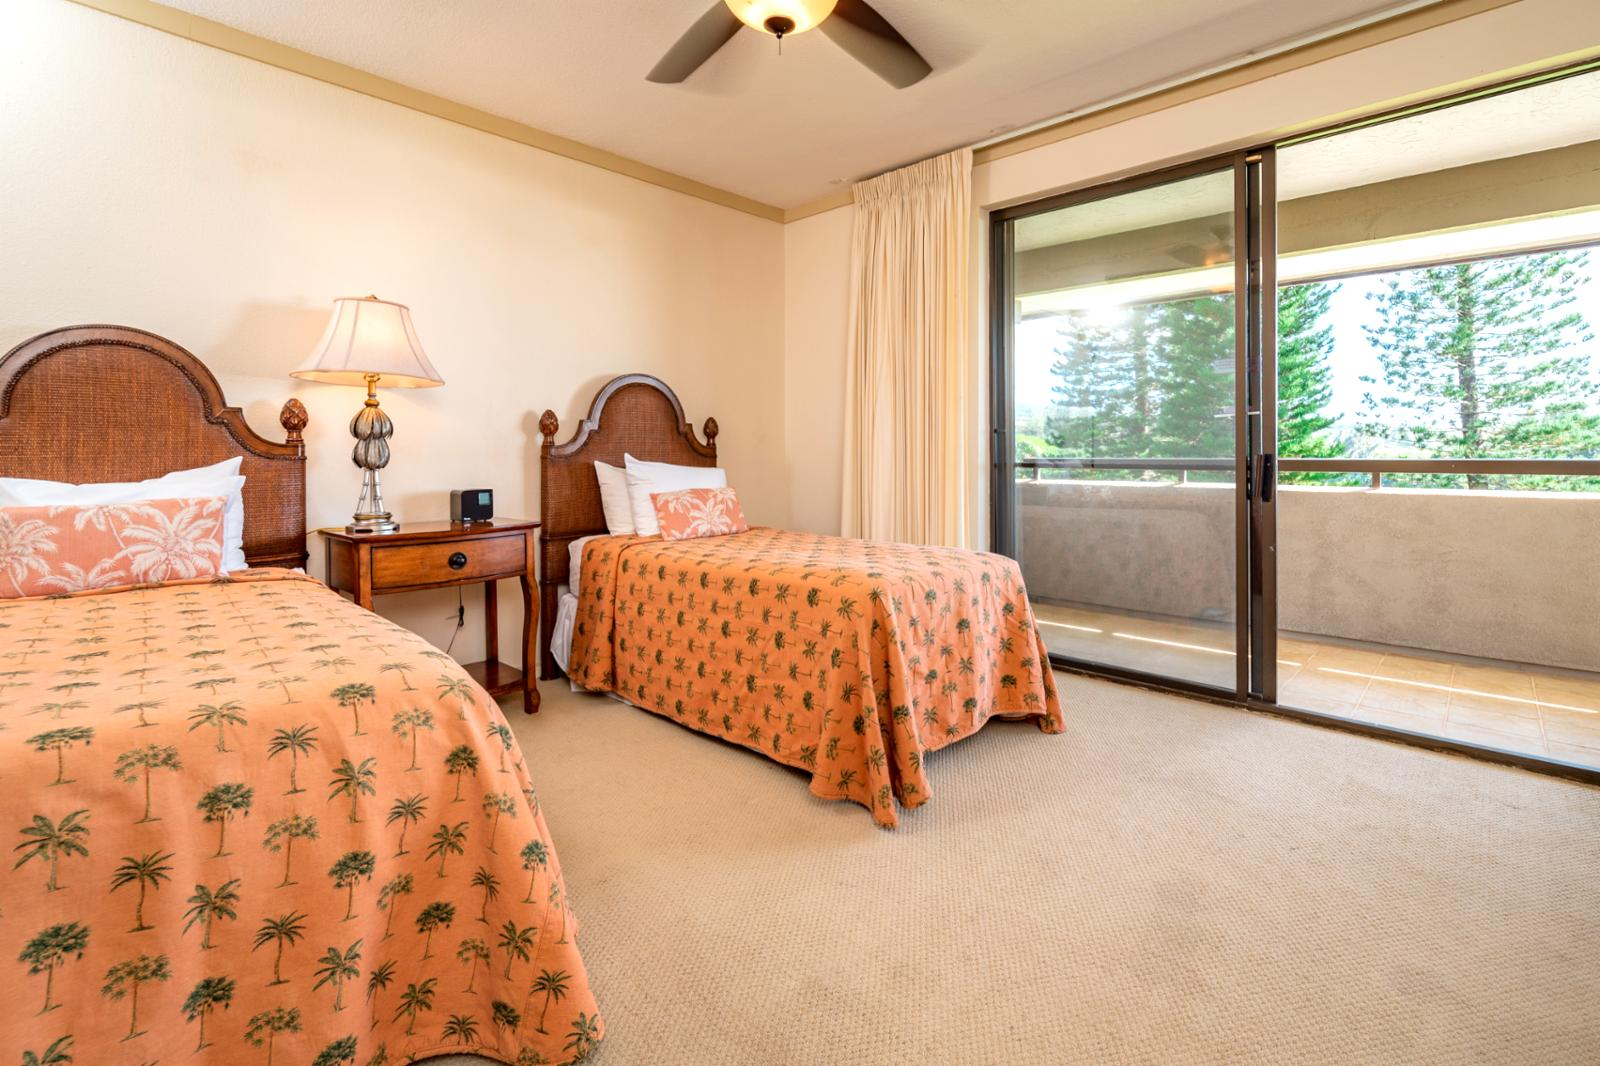 Private access to the balcony and equipped with suite ceiling fan!